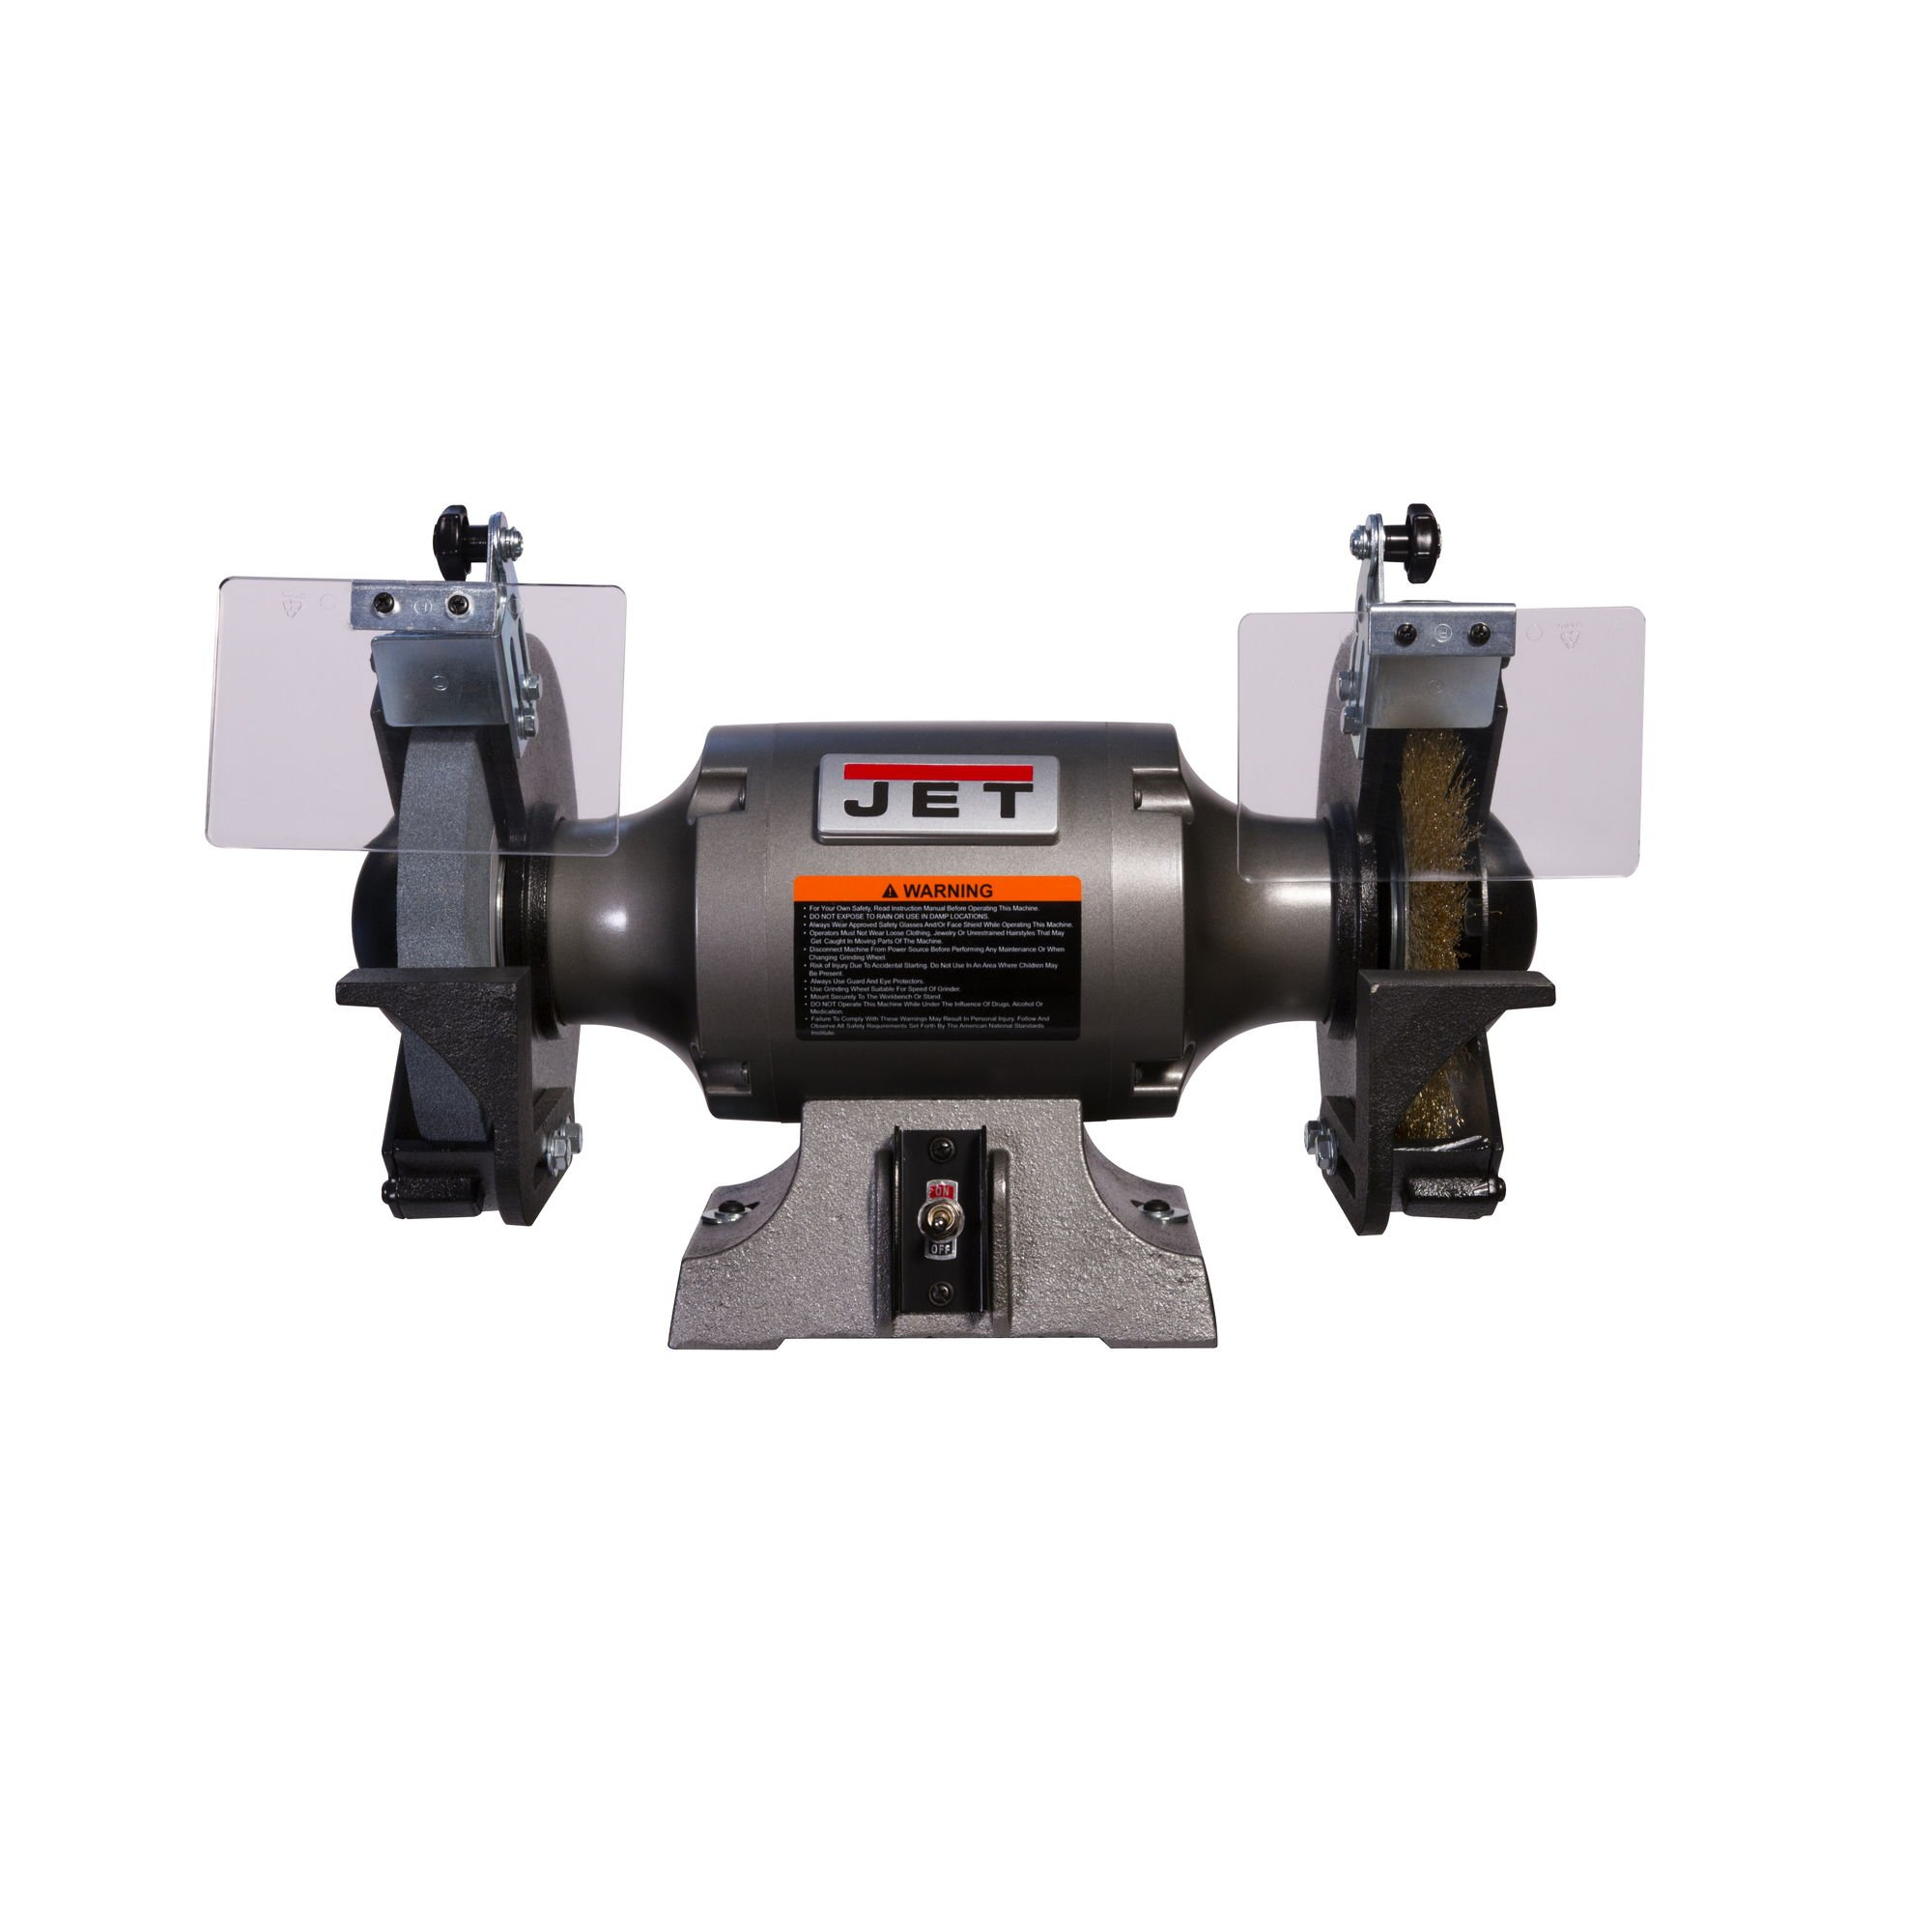 Fabulous Dewalt Bench Grinder 8 Inch Dw758 Buy Online In Uae Gmtry Best Dining Table And Chair Ideas Images Gmtryco